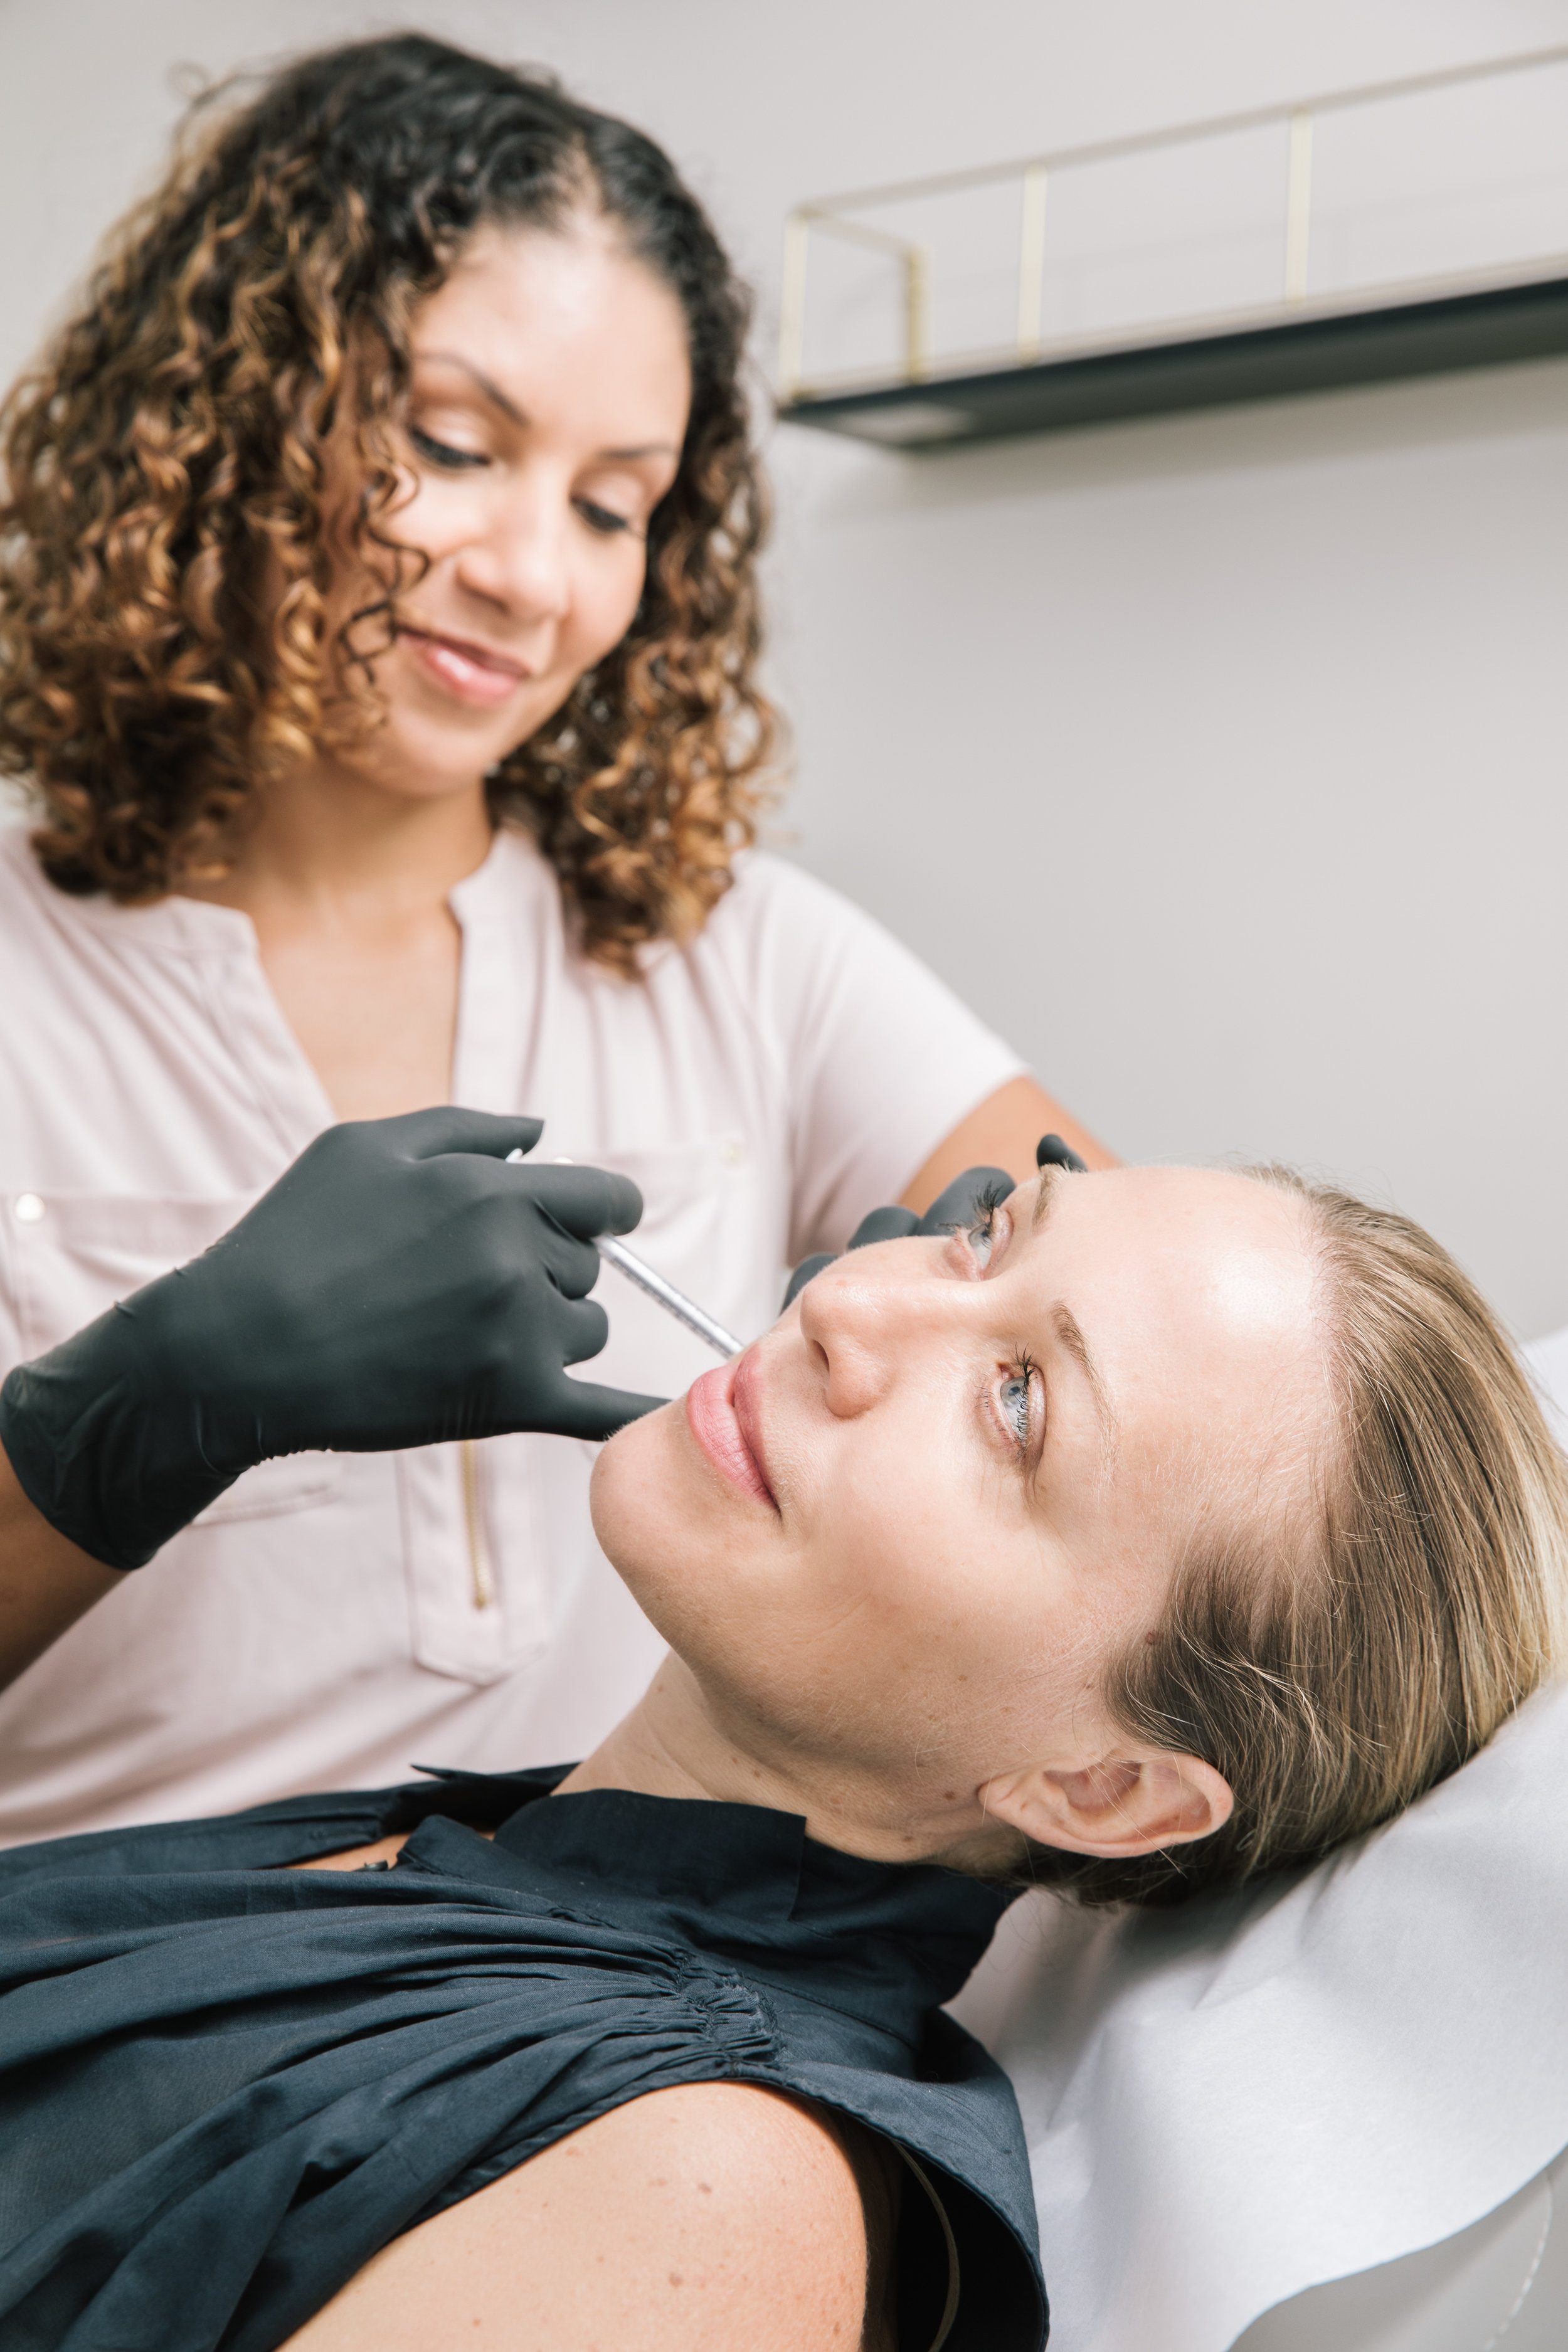 Evolved Beauty - Evolved Beauty pairs with Evolved Science so you feel as good on the outside as you do on the inside.Jessina Moore, RN, offers a suite of aesthetic treatments and the latest techniques.Learn more about Evolved Beauty